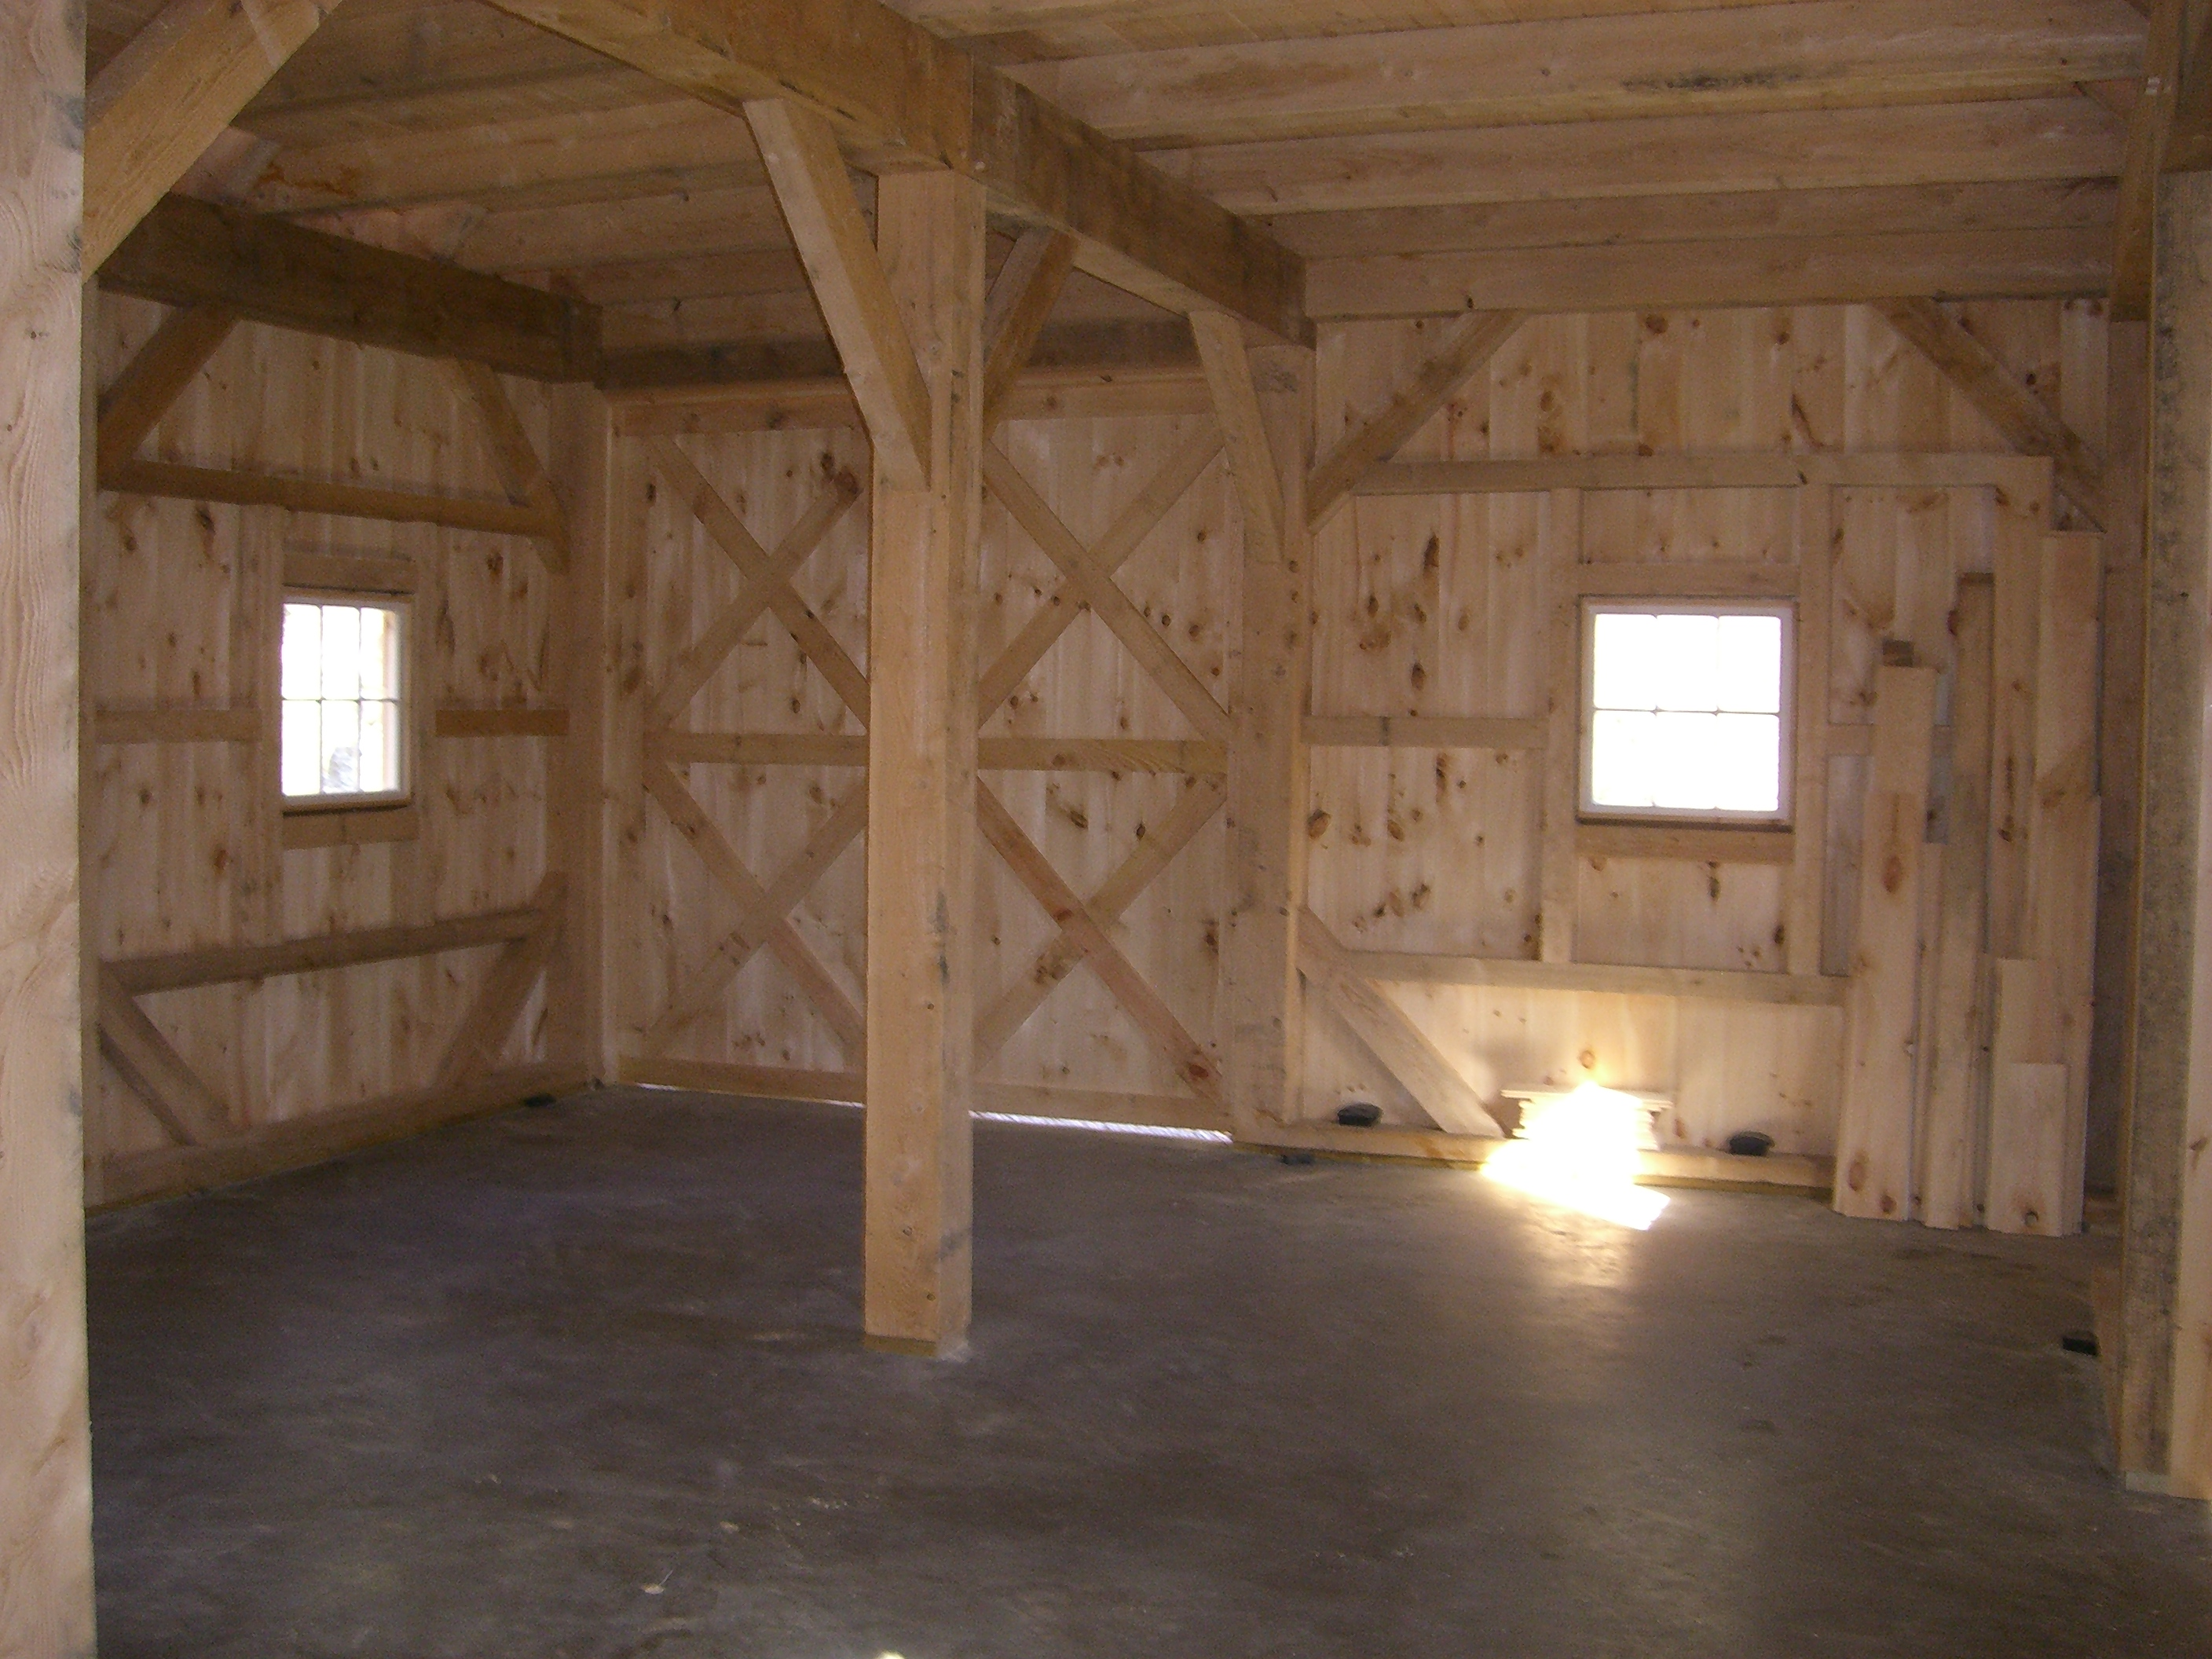 Inside 20' x 24' Post and Beam Barn